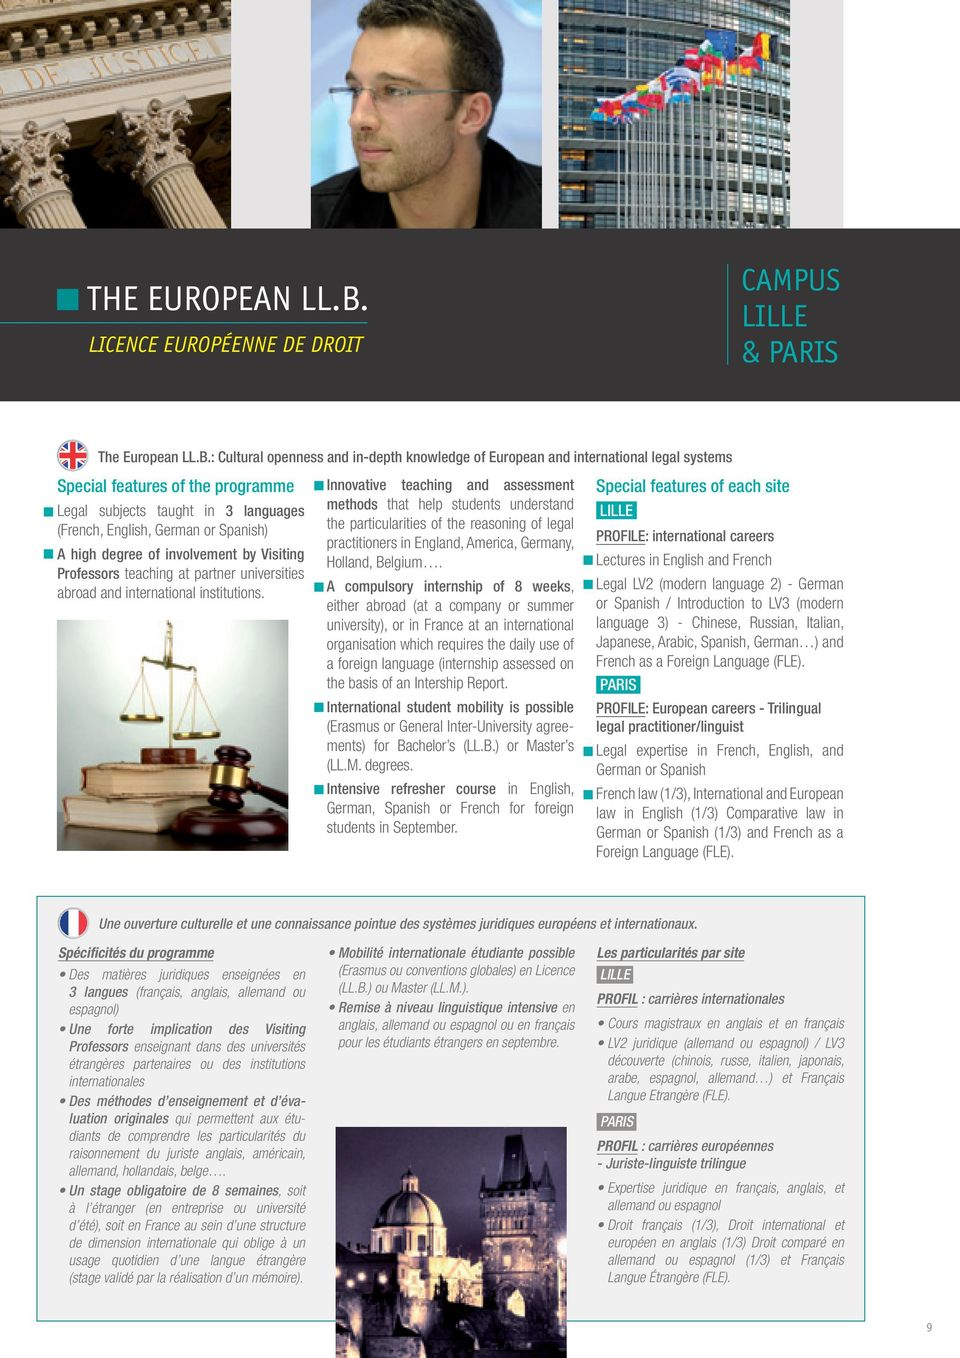 : Cultural openness and in-depth knowledge of European and international legal systems Special features of the programme Legal subjects taught in 3 languages (French, English, German or Spanish) A